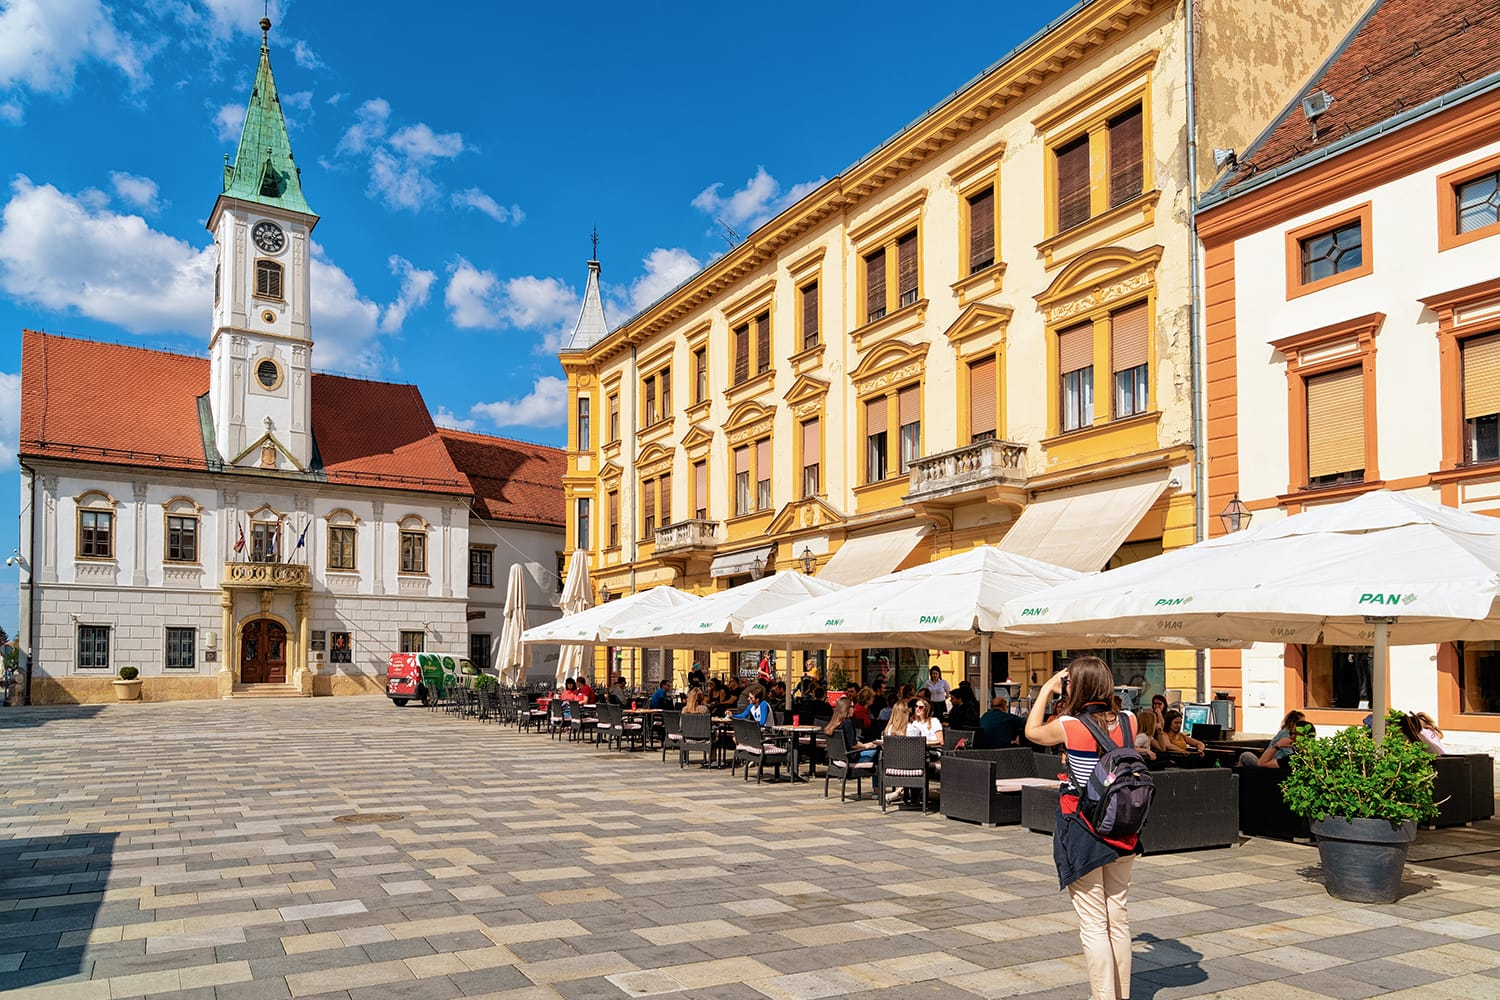 Girl photographer taking photos at Street cafes and restaurants at Town Hall on King Tomislav Square in Old city of Varazdin in Croatia